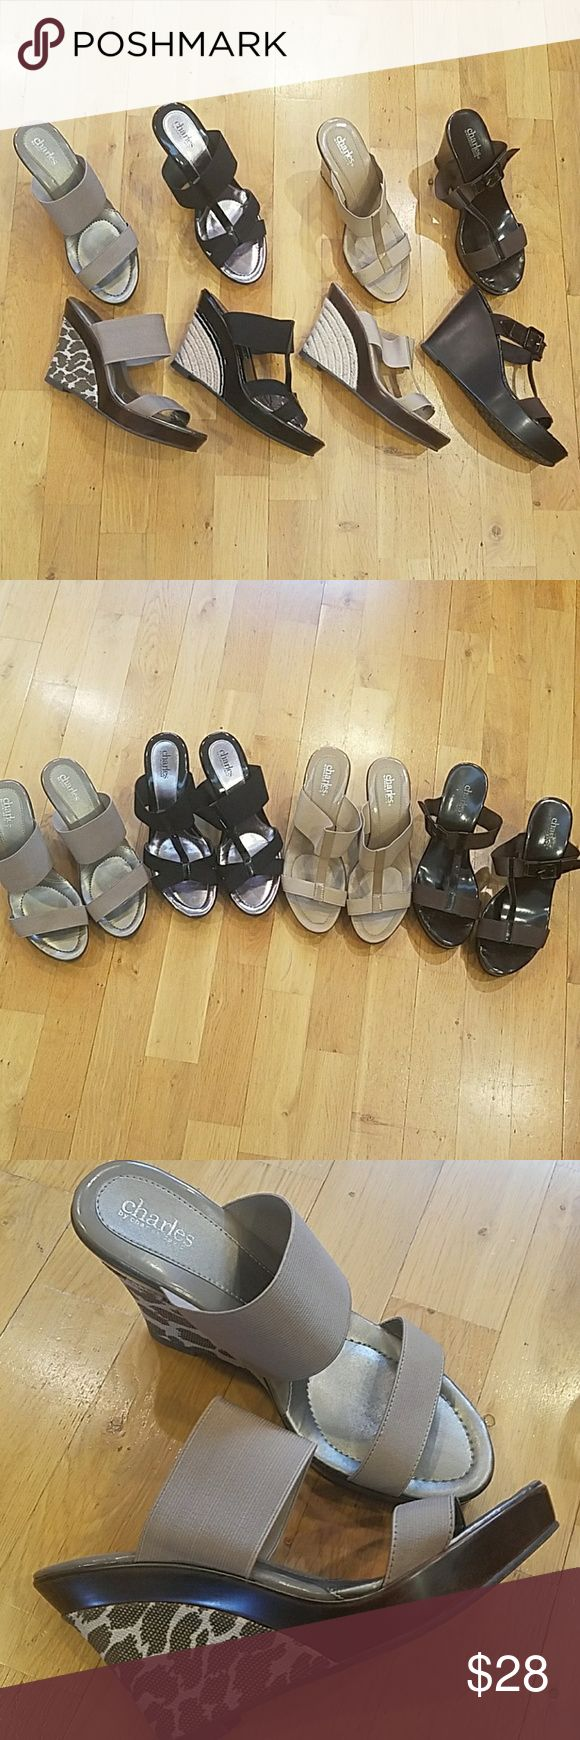 Charles David Shoe Lot (4 pair) Size 8 Charles David Shoe Lot (4 pair) Size 8 Comfortable shoes that go with everything.  All have been used. Still lots of life left. Charles David Shoes Wedges